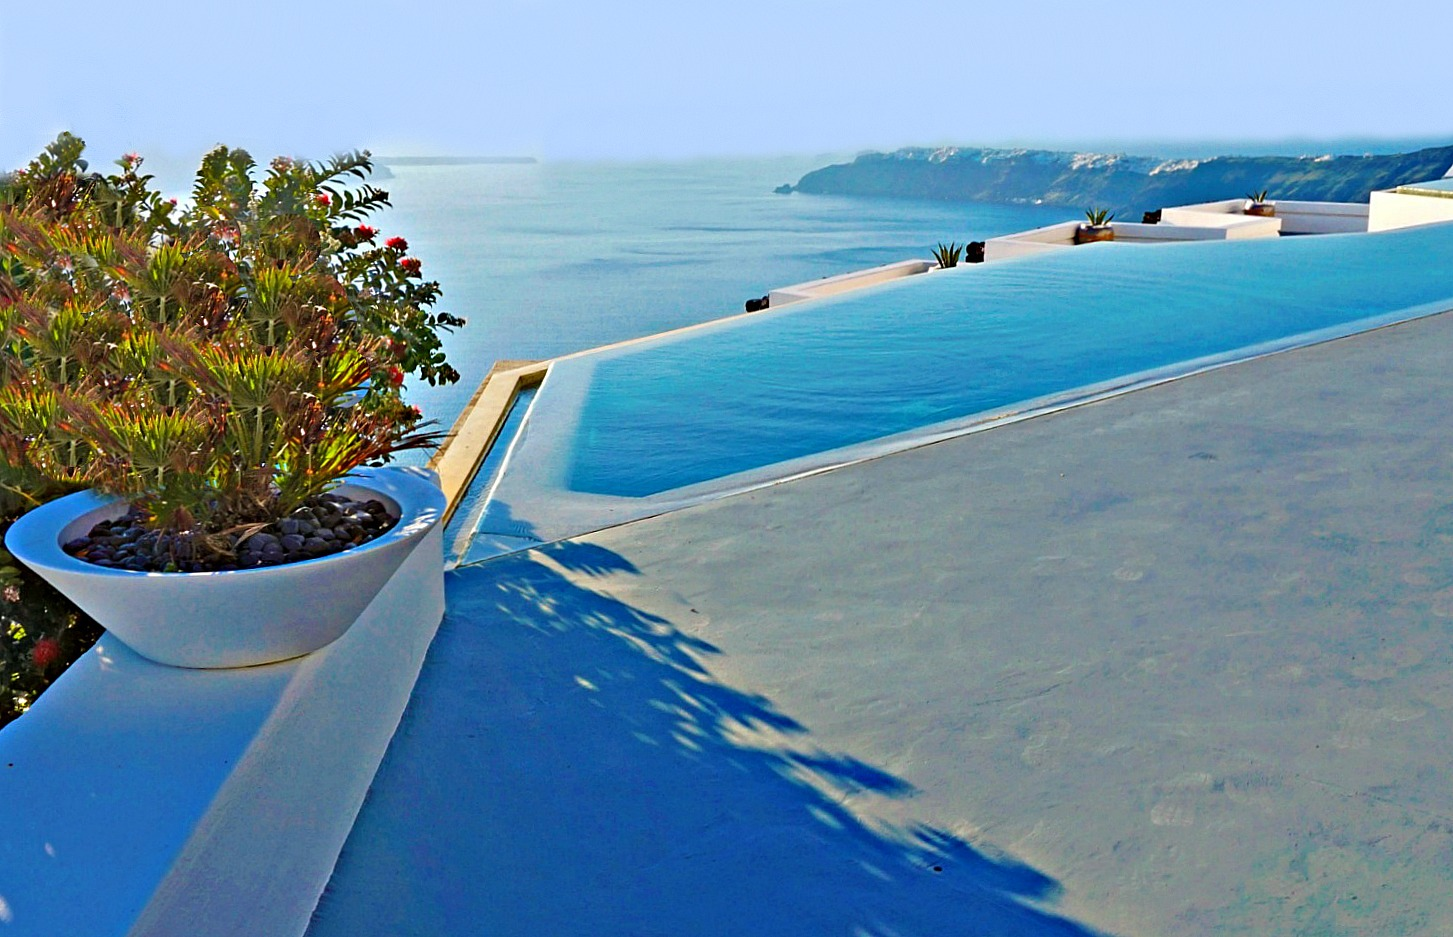 The infinity pool at Grace Hotel in Imerovigli Santorini.